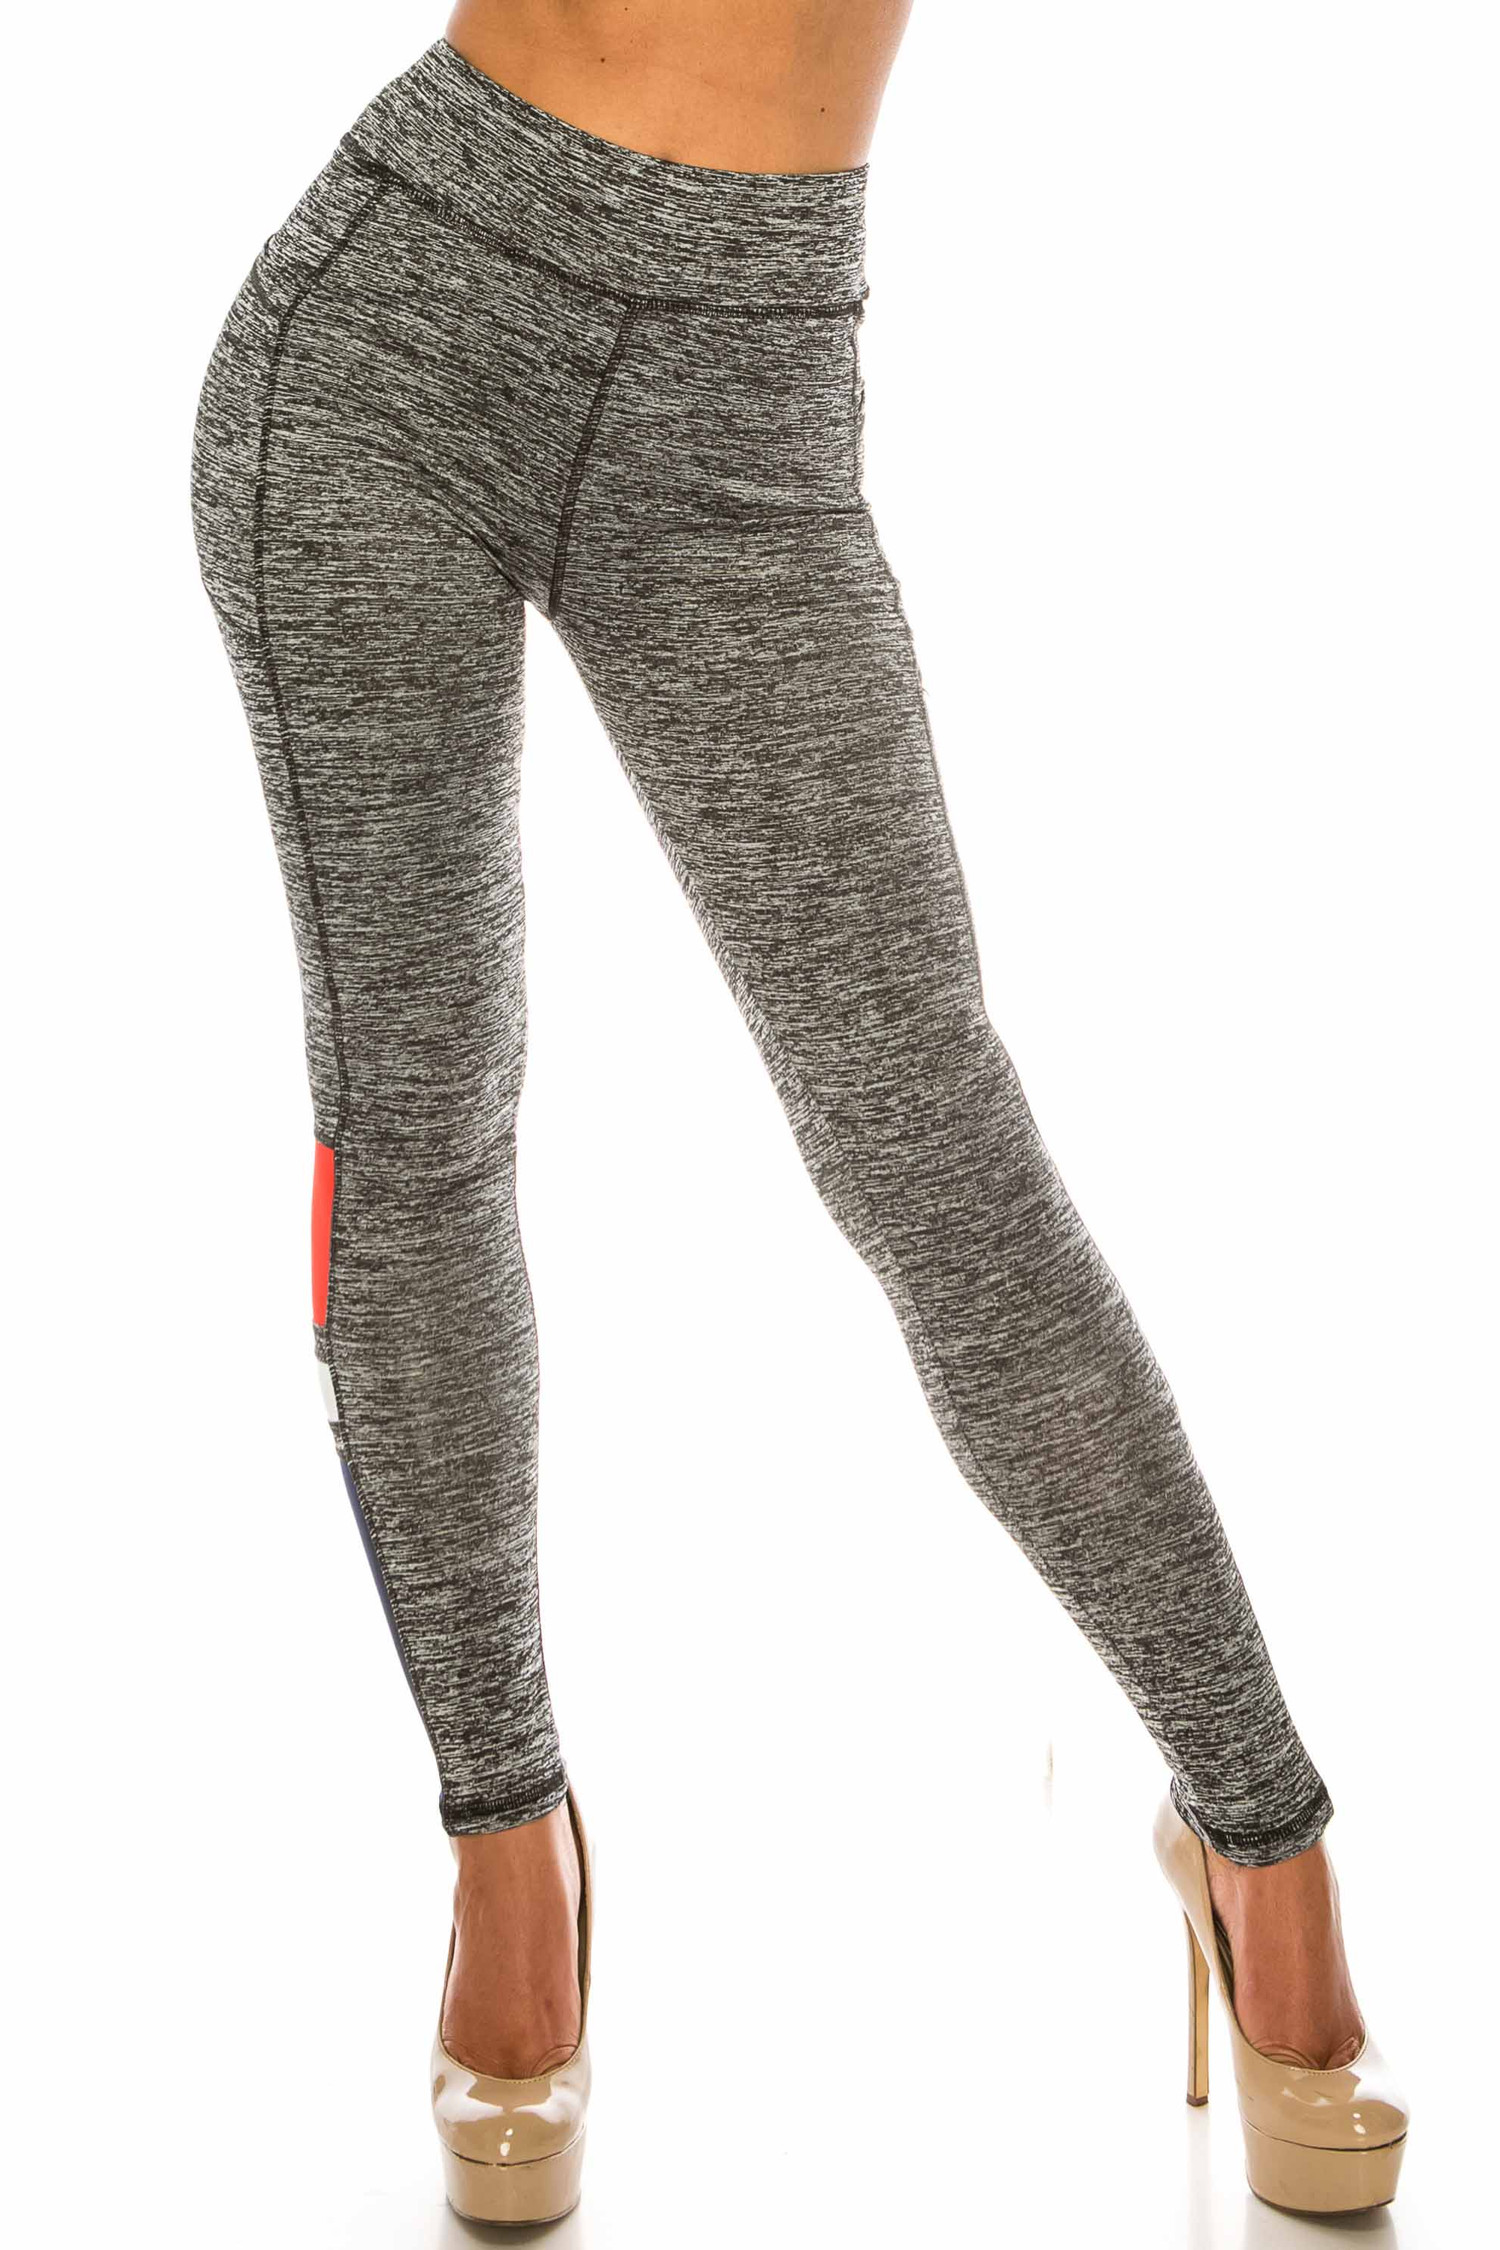 Red Accent High Waisted Workout Leggings with Side Pocket